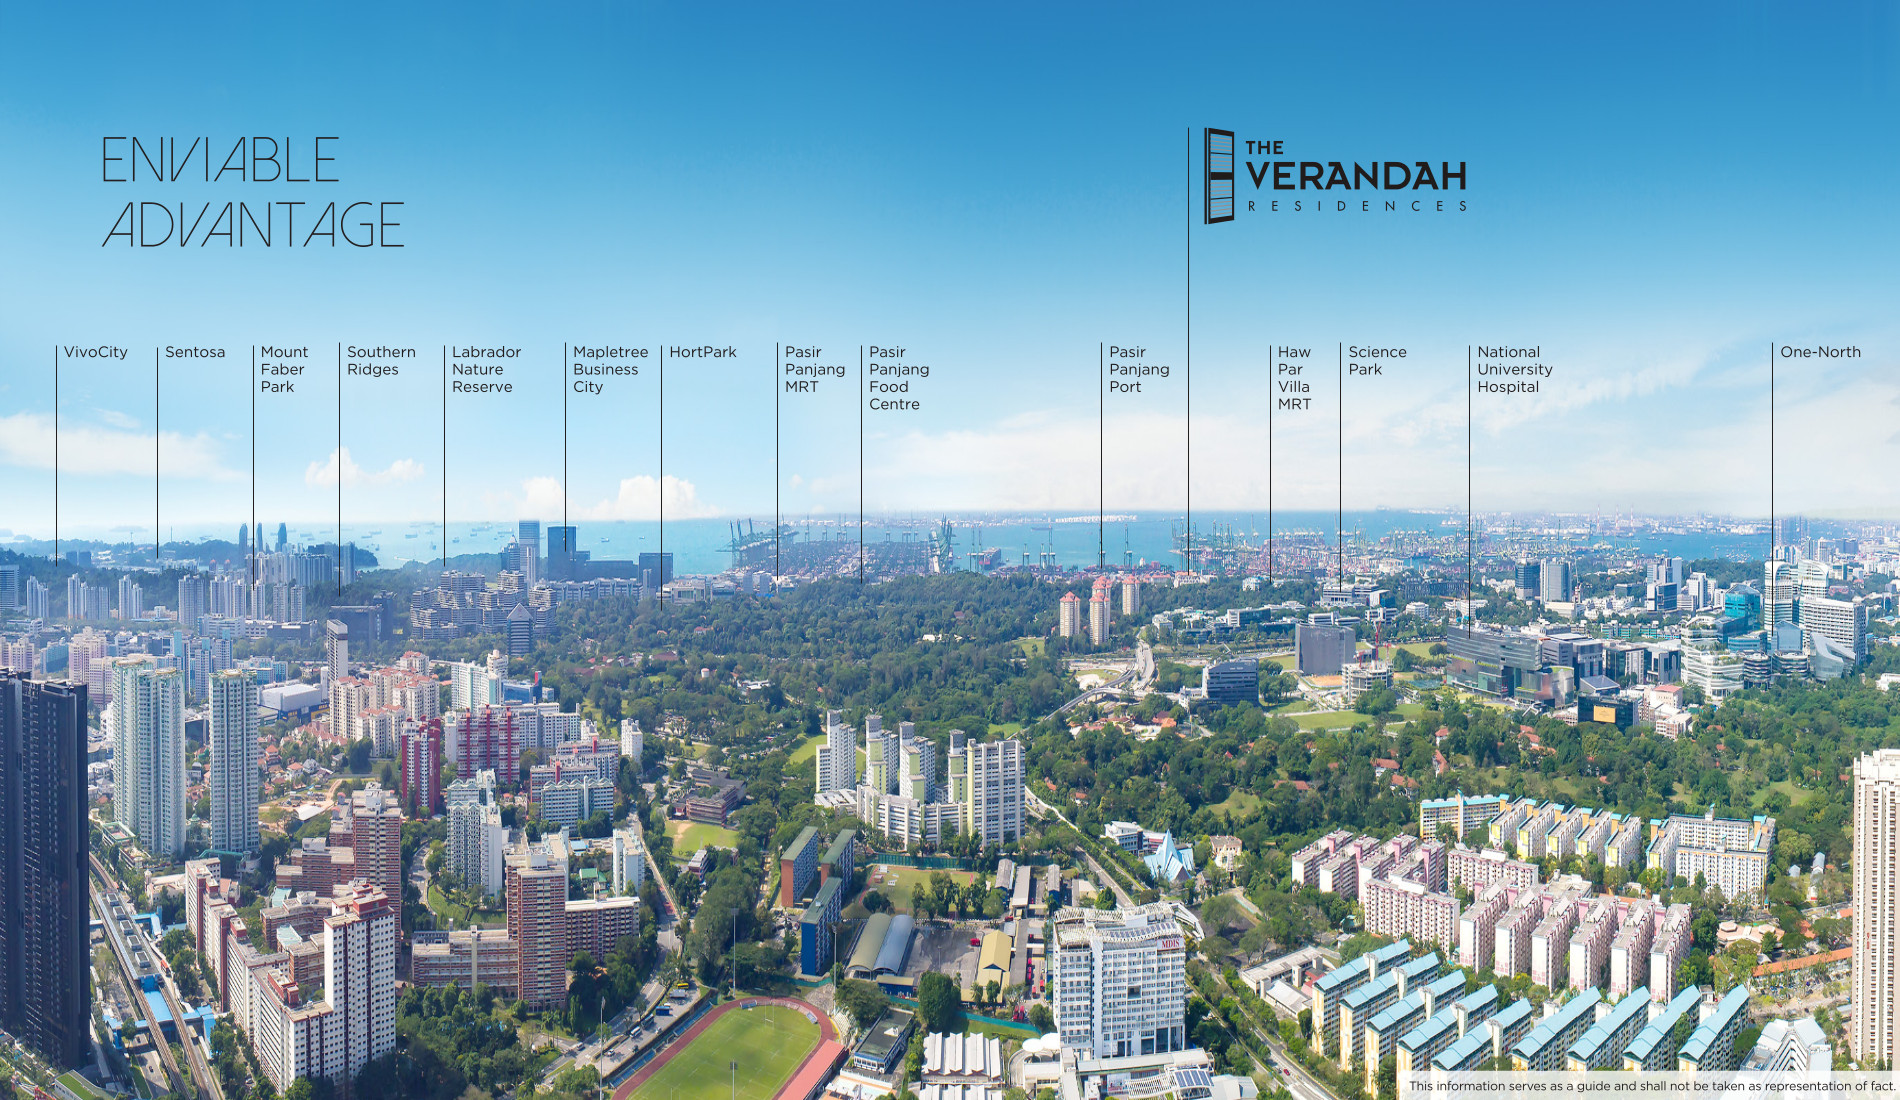 The Verandah Residences Location View